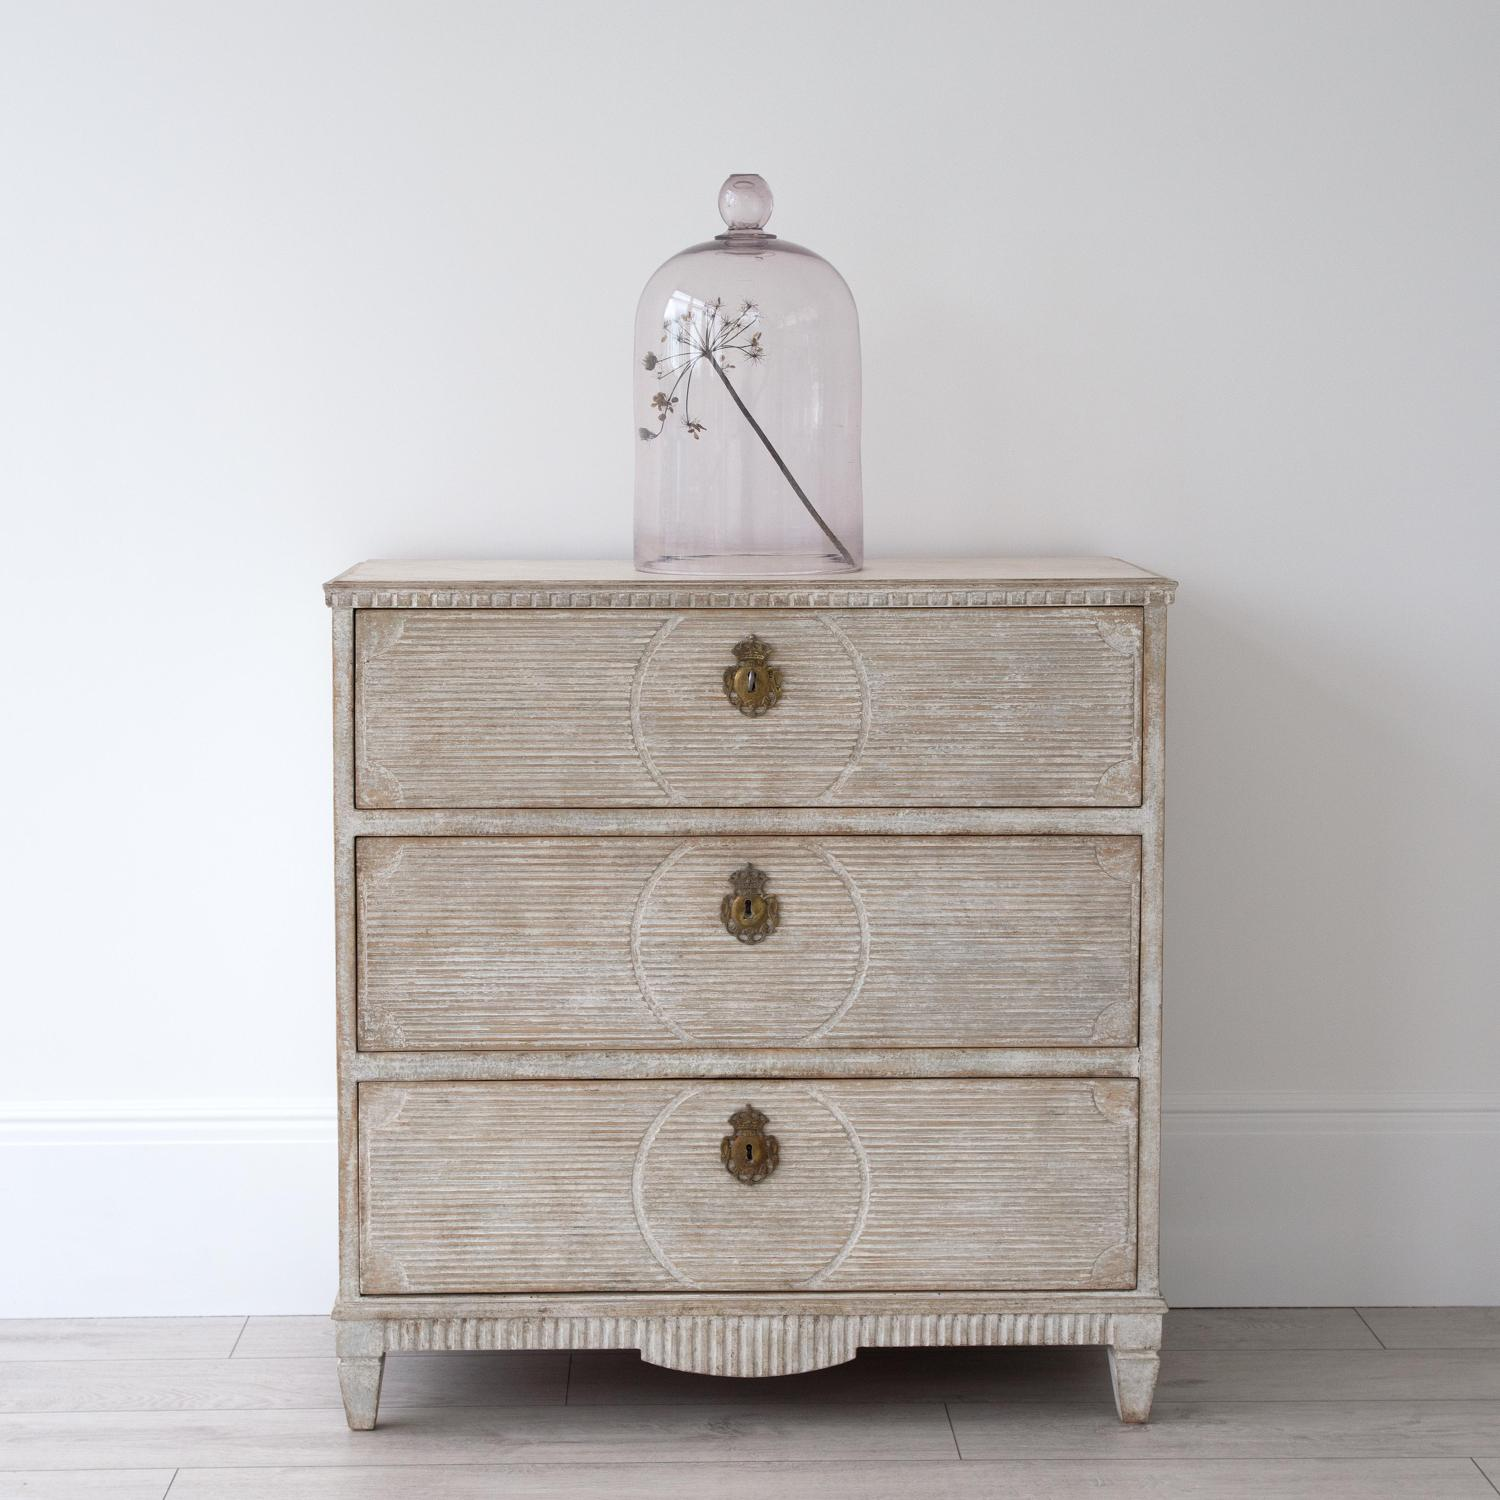 LATE 19TH CENTURY SWEDISH GUSTAVIAN CHEST